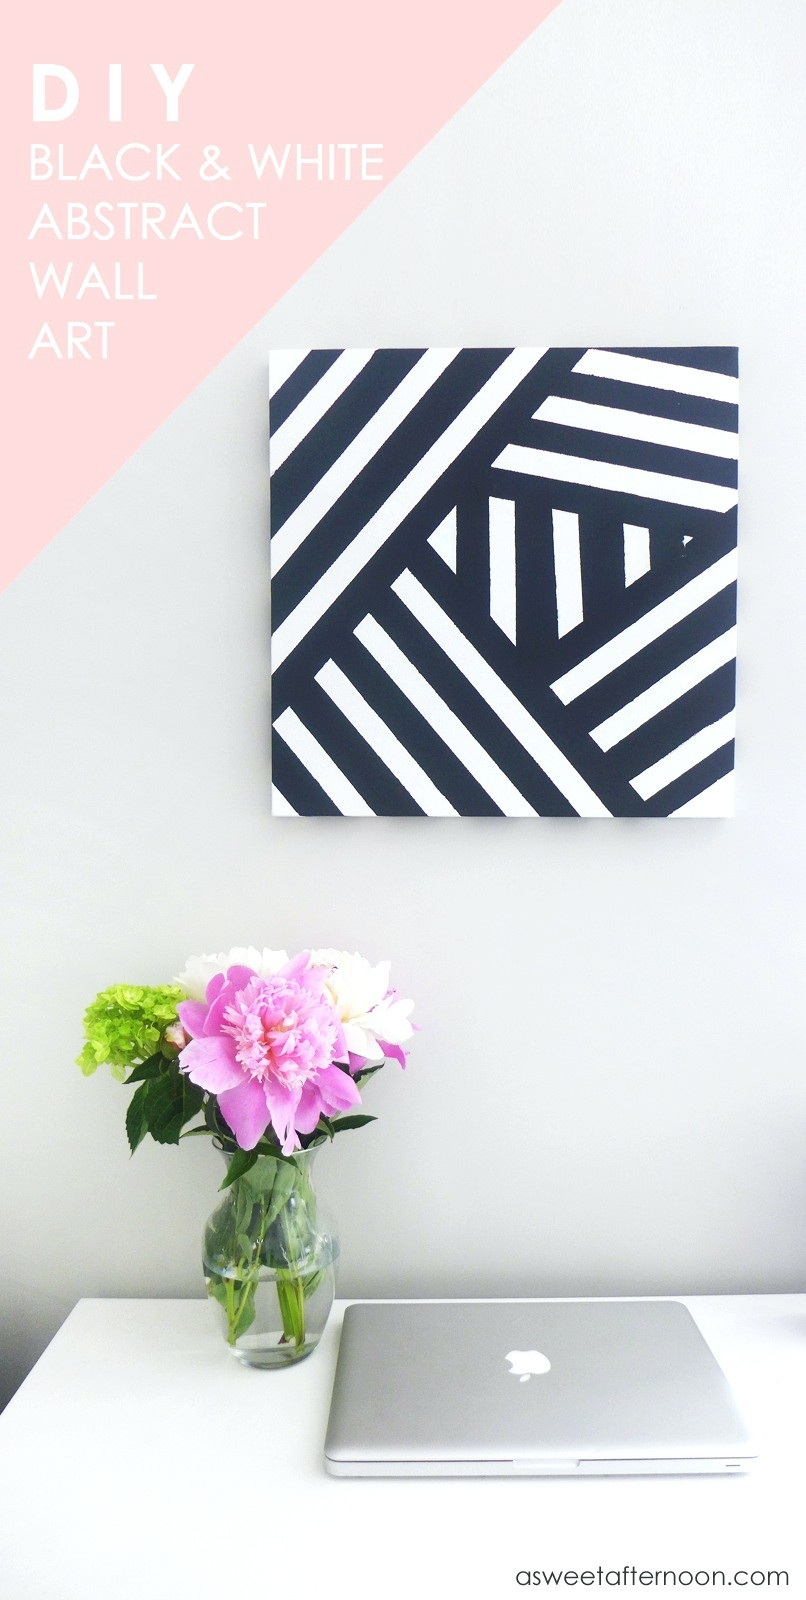 Wall Arts ~ Diy Black And White Abstract Wall Art Black White And pertaining to Black And White Wall Art Diy 27281